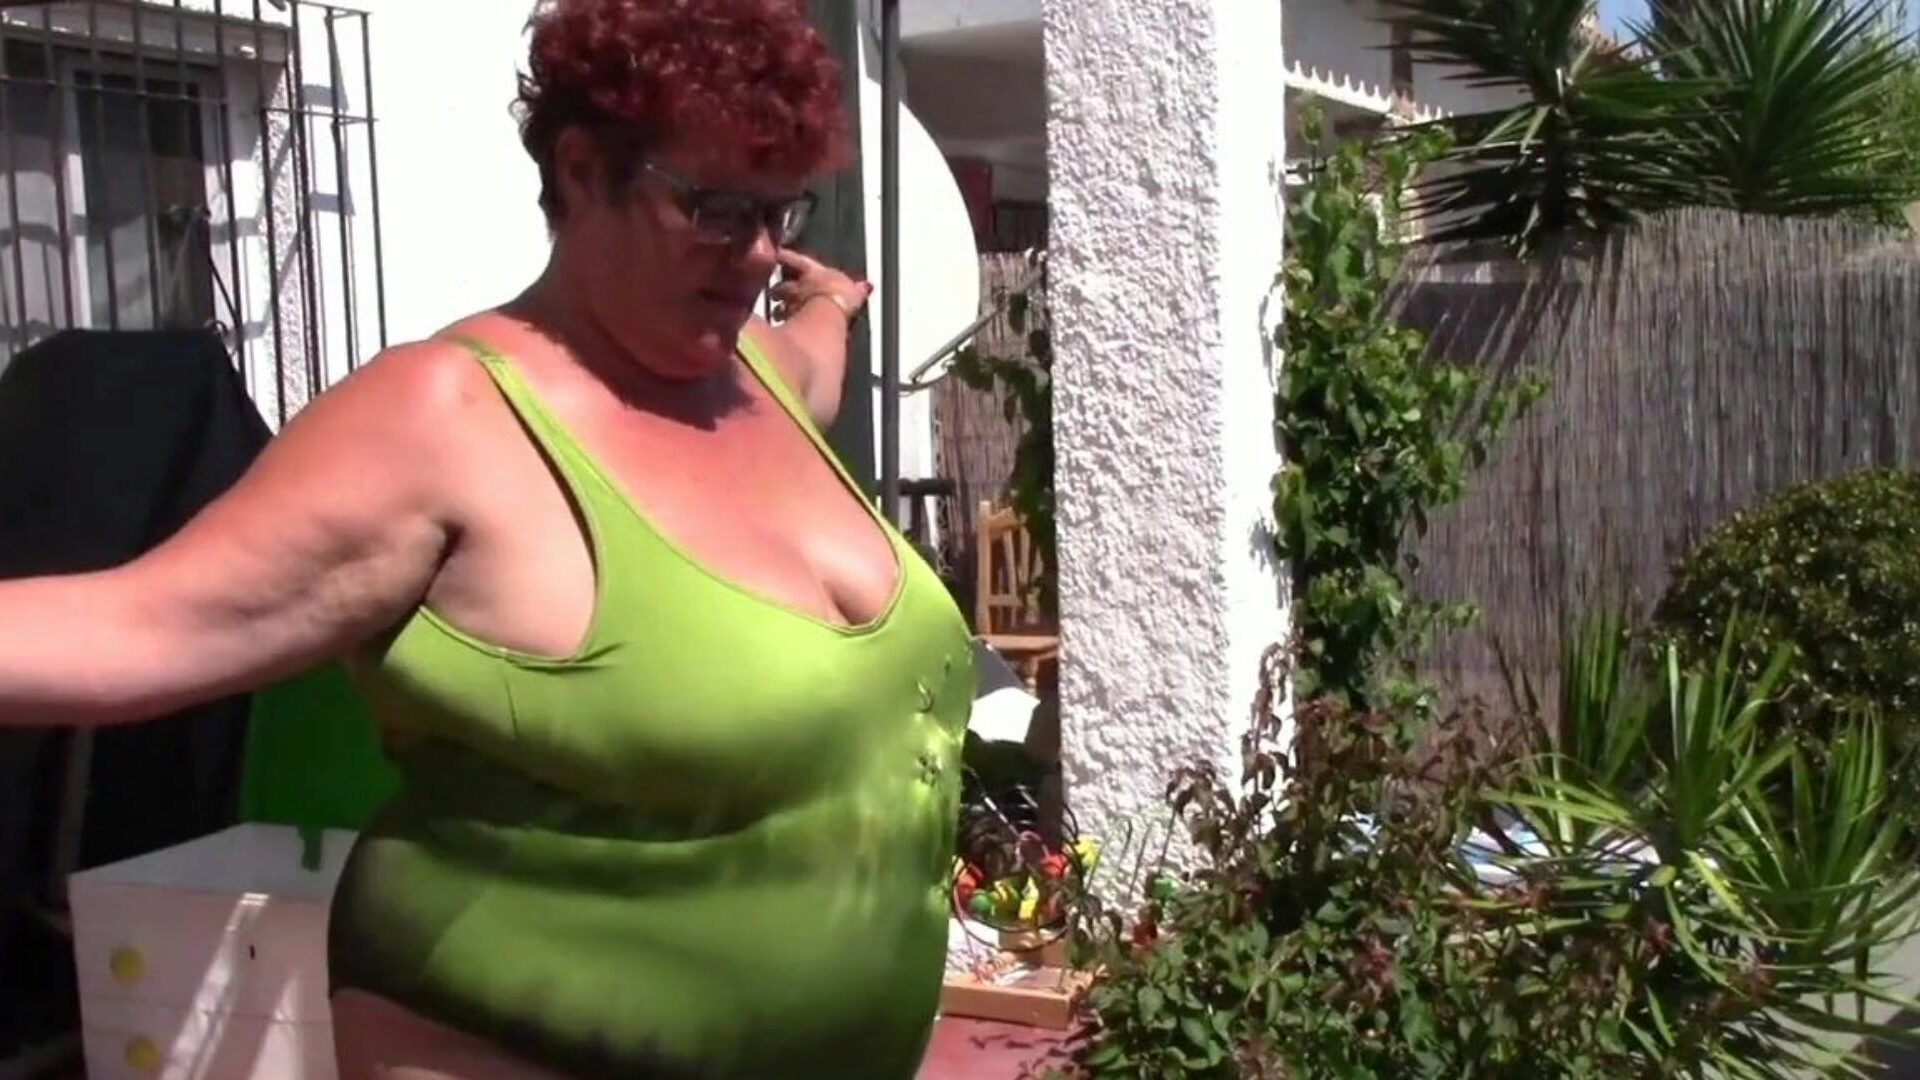 Chubby 50yo Mature Wife acquires Fucked and Creampied: Porn 8d Watch Chubby 50yo Mature Wife acquires Fucked and Creampied episode on xHamster - the ultimate selection of free-for-all Free Mature Tube & Mature Xxx HD pornography tube episodes